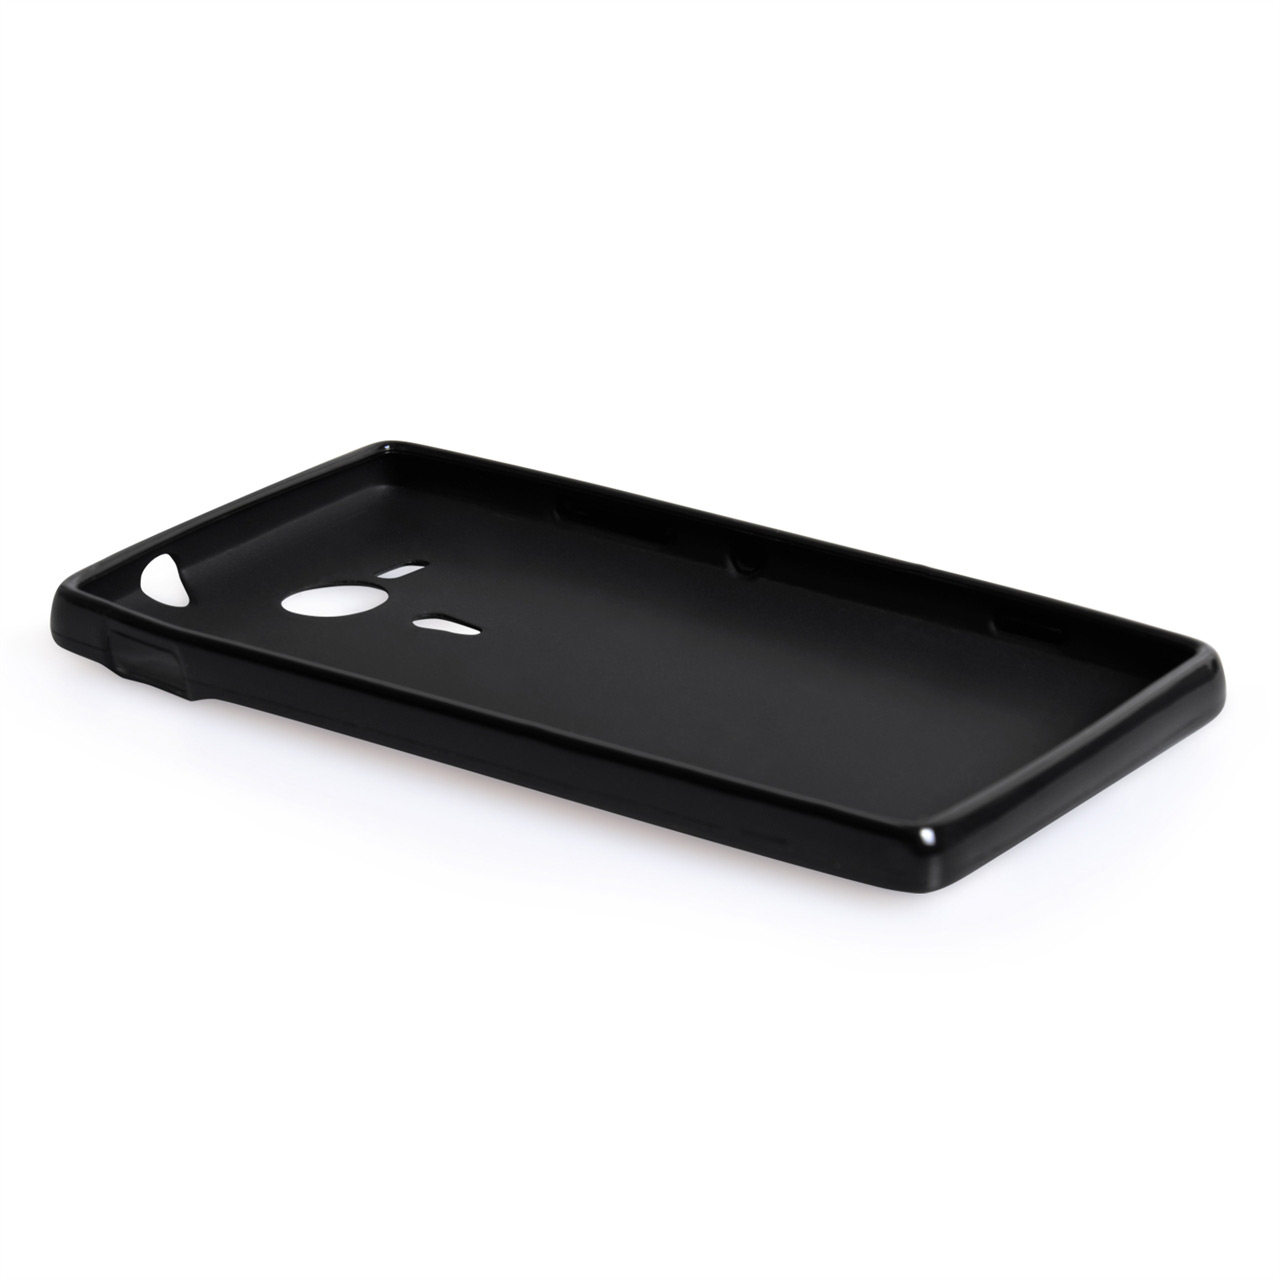 YouSave Accessories Sony Xperia SP Silicone Gel Case - Black